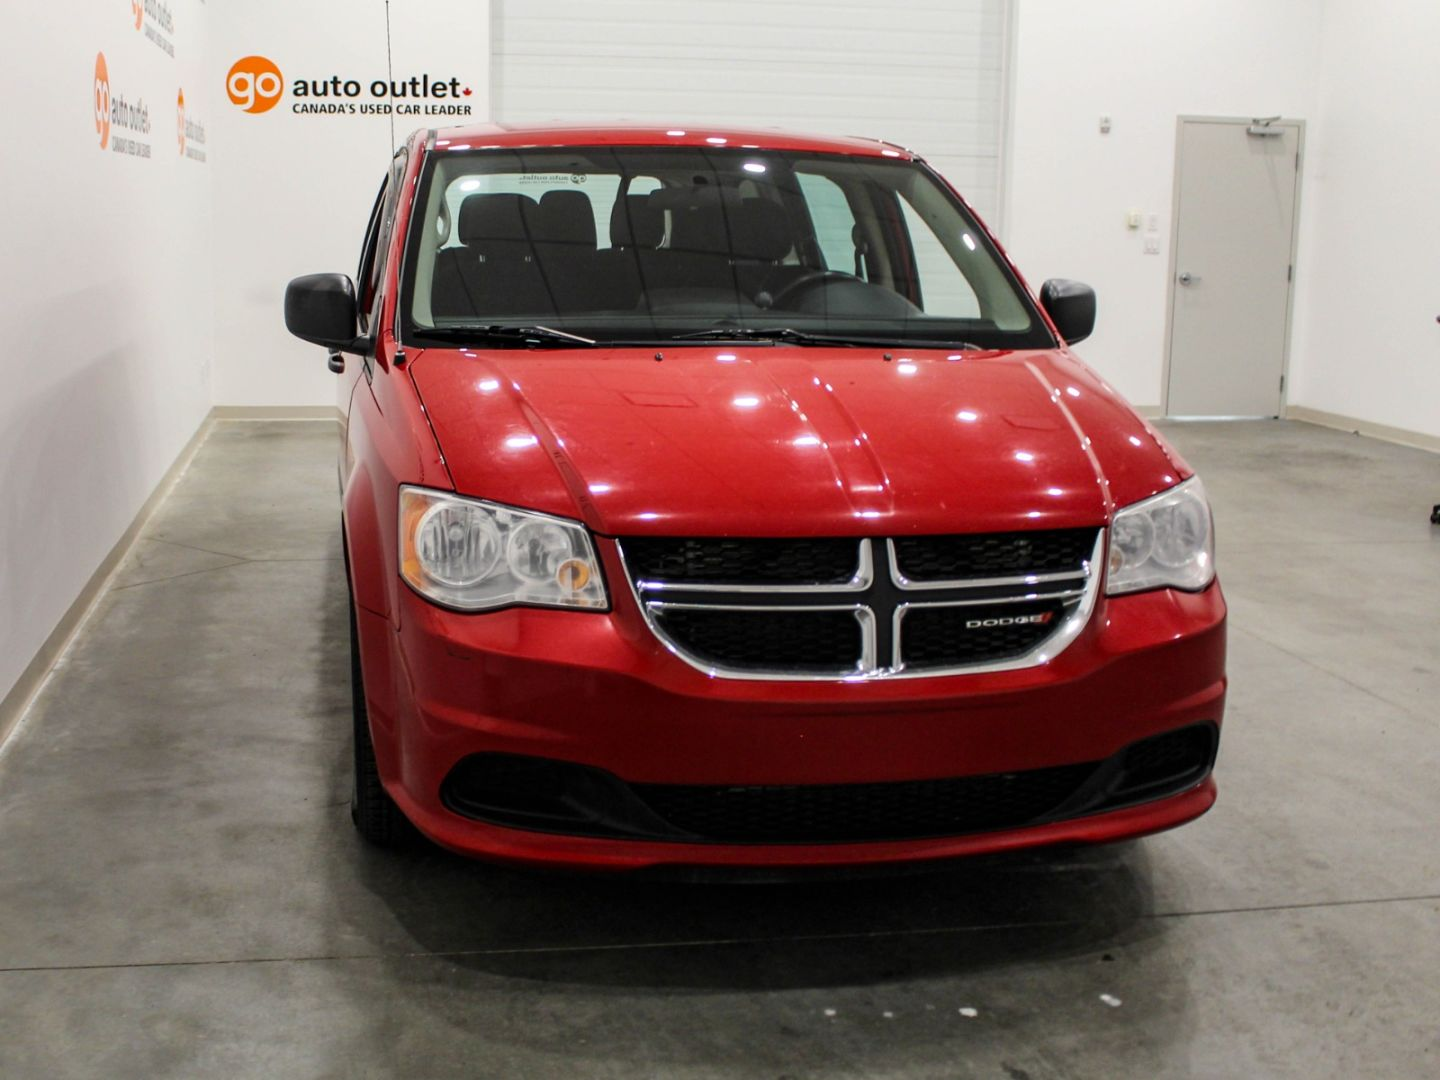 2014 Dodge Grand Caravan SE for sale in Edmonton, Alberta